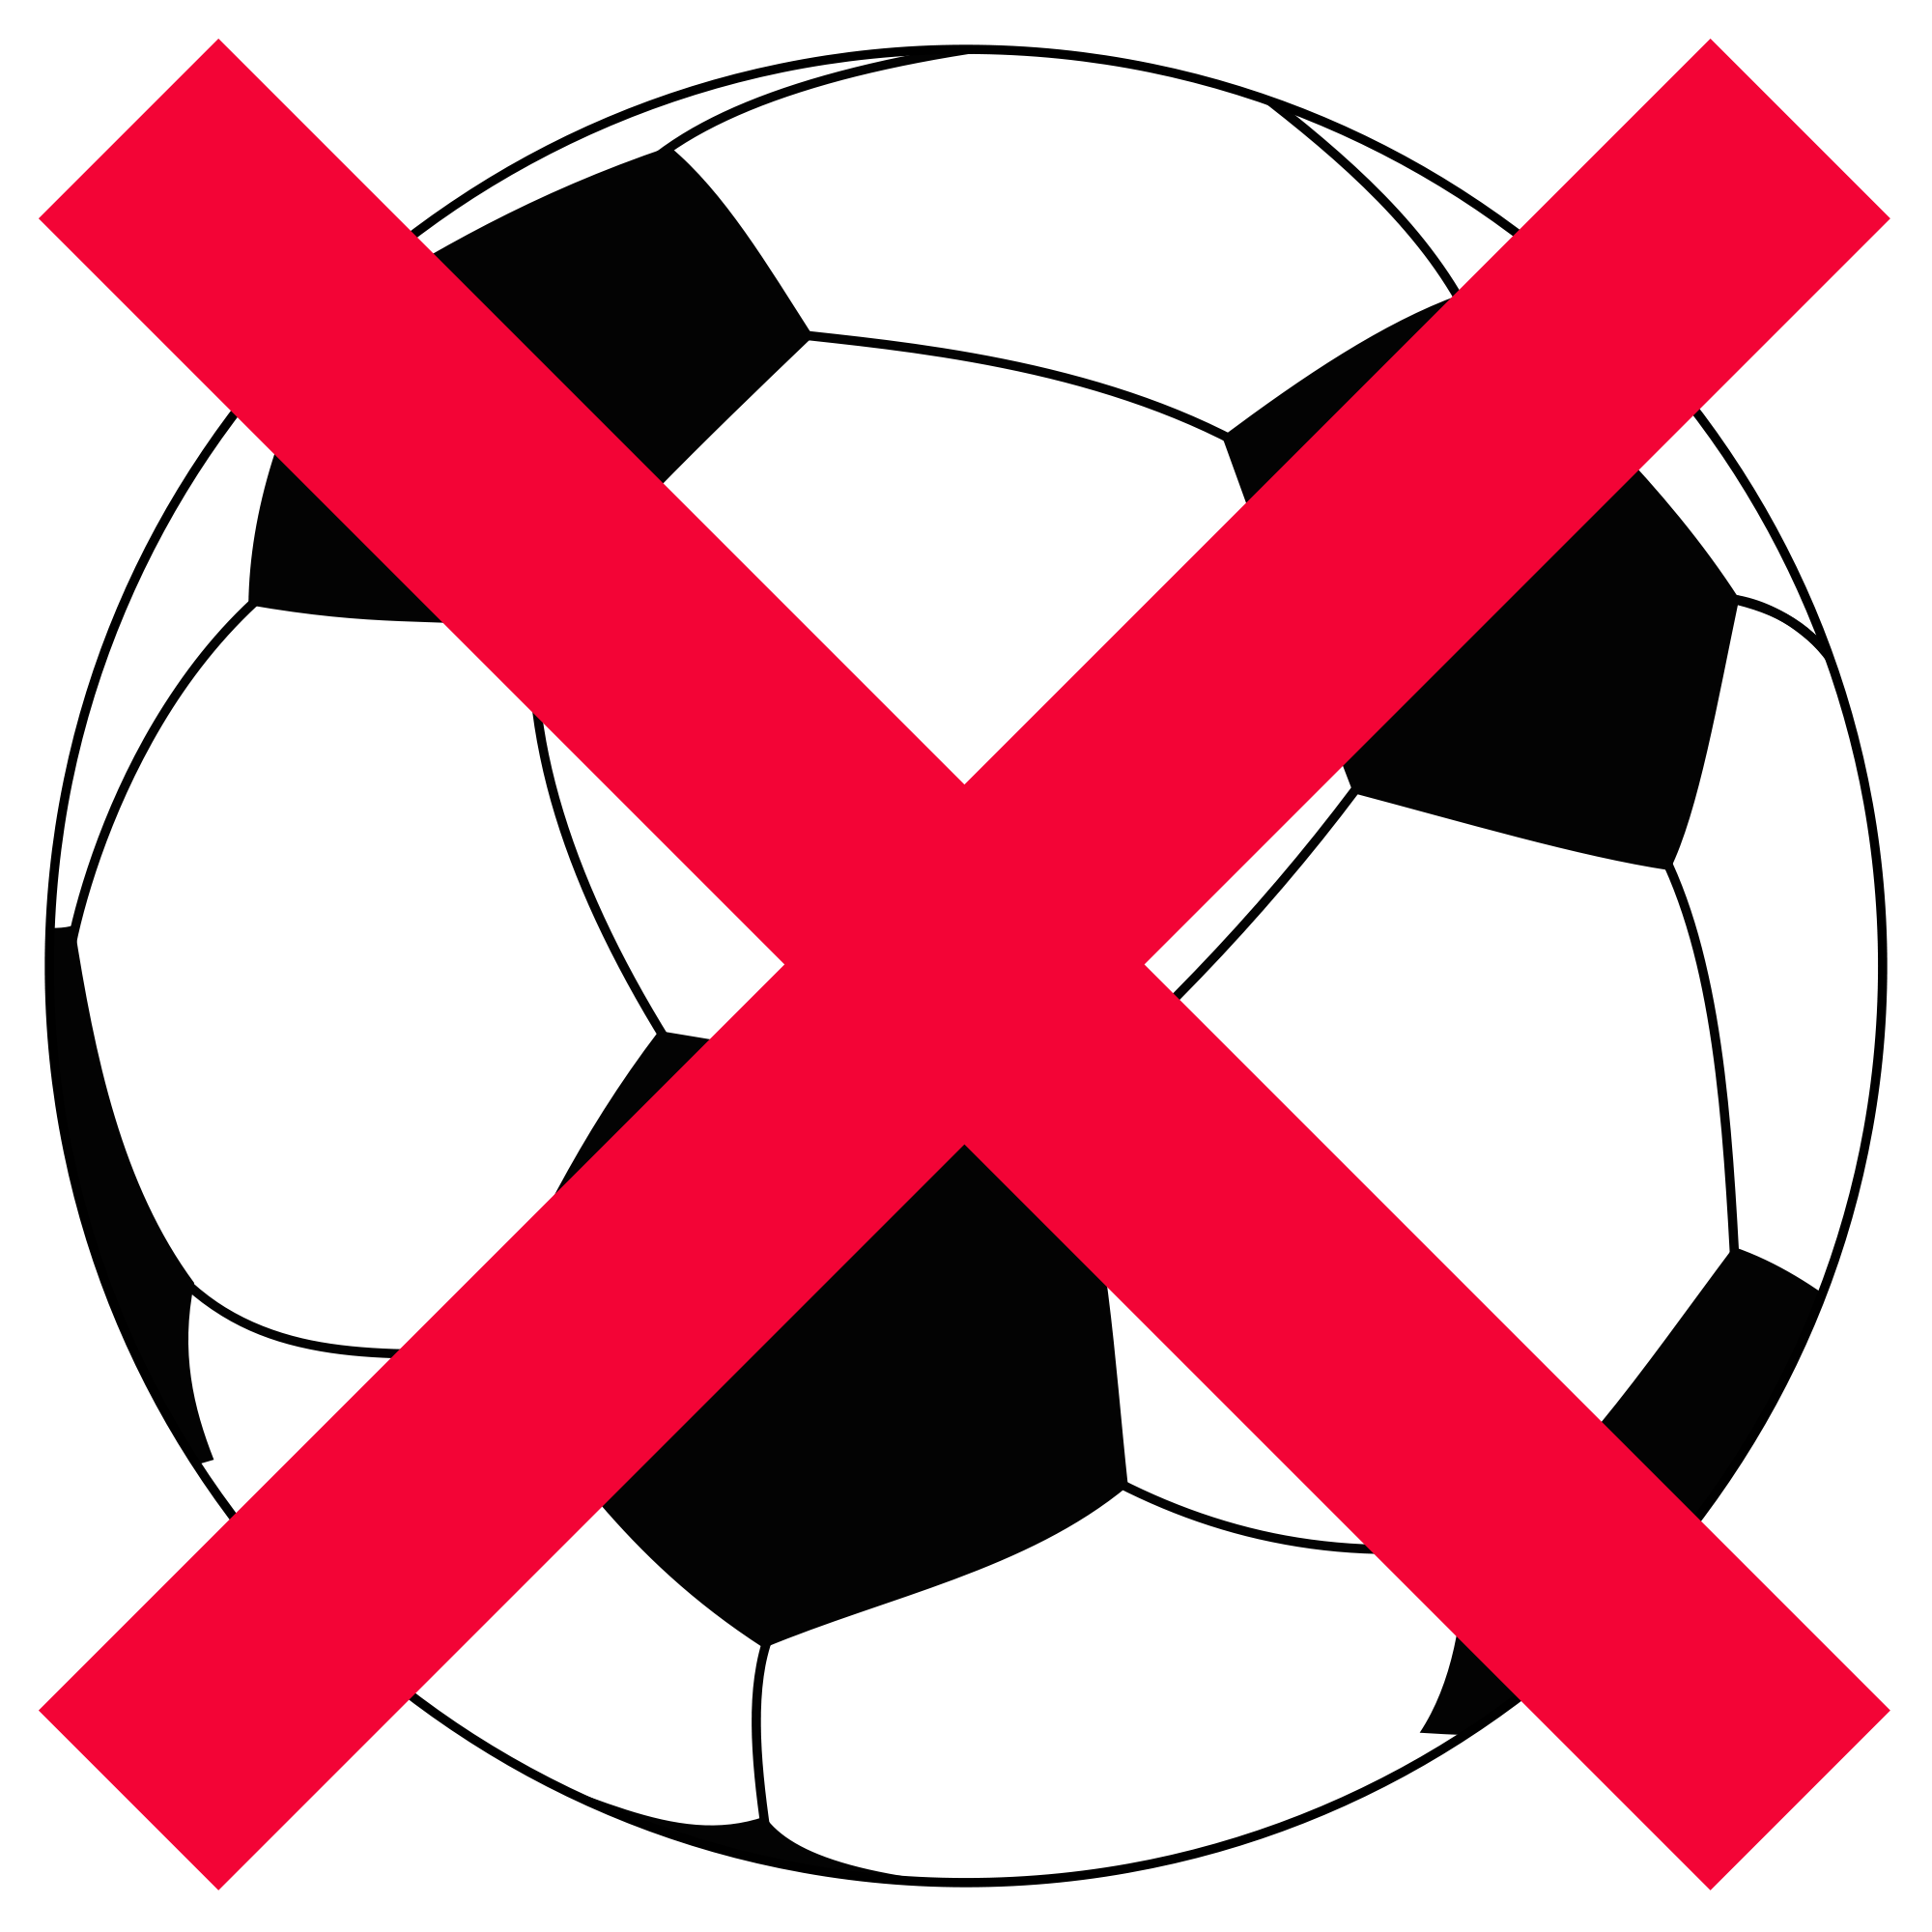 Open football clipart image library library File:Football-NO.svg - Wikimedia Commons image library library